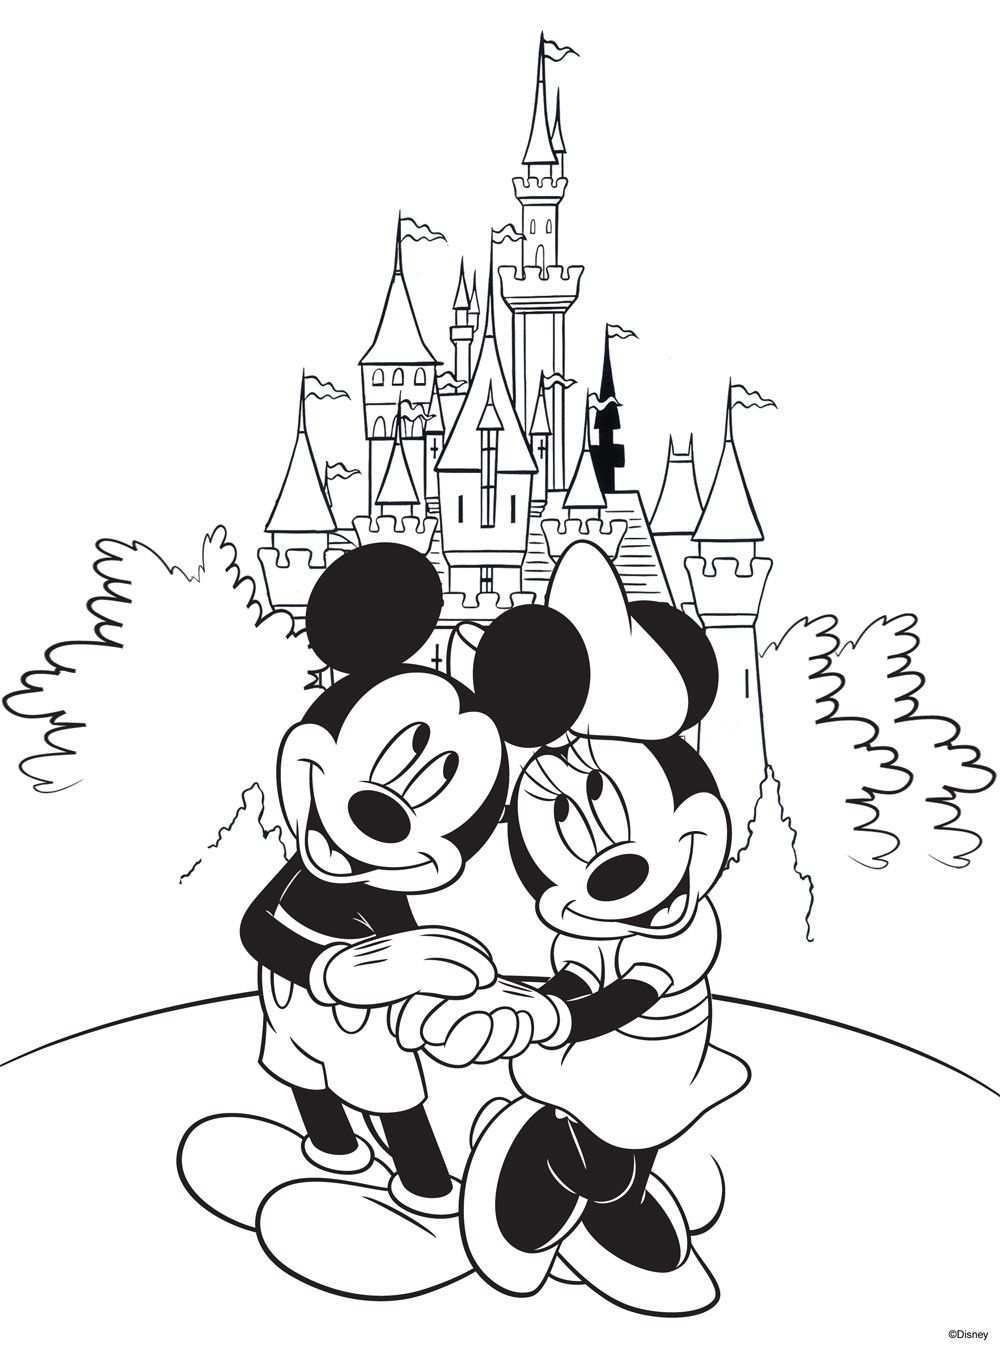 Free Disney Coloring Page Printable Disney Coloring Pages Disney Coloring Sheets Free Disney Coloring Pages